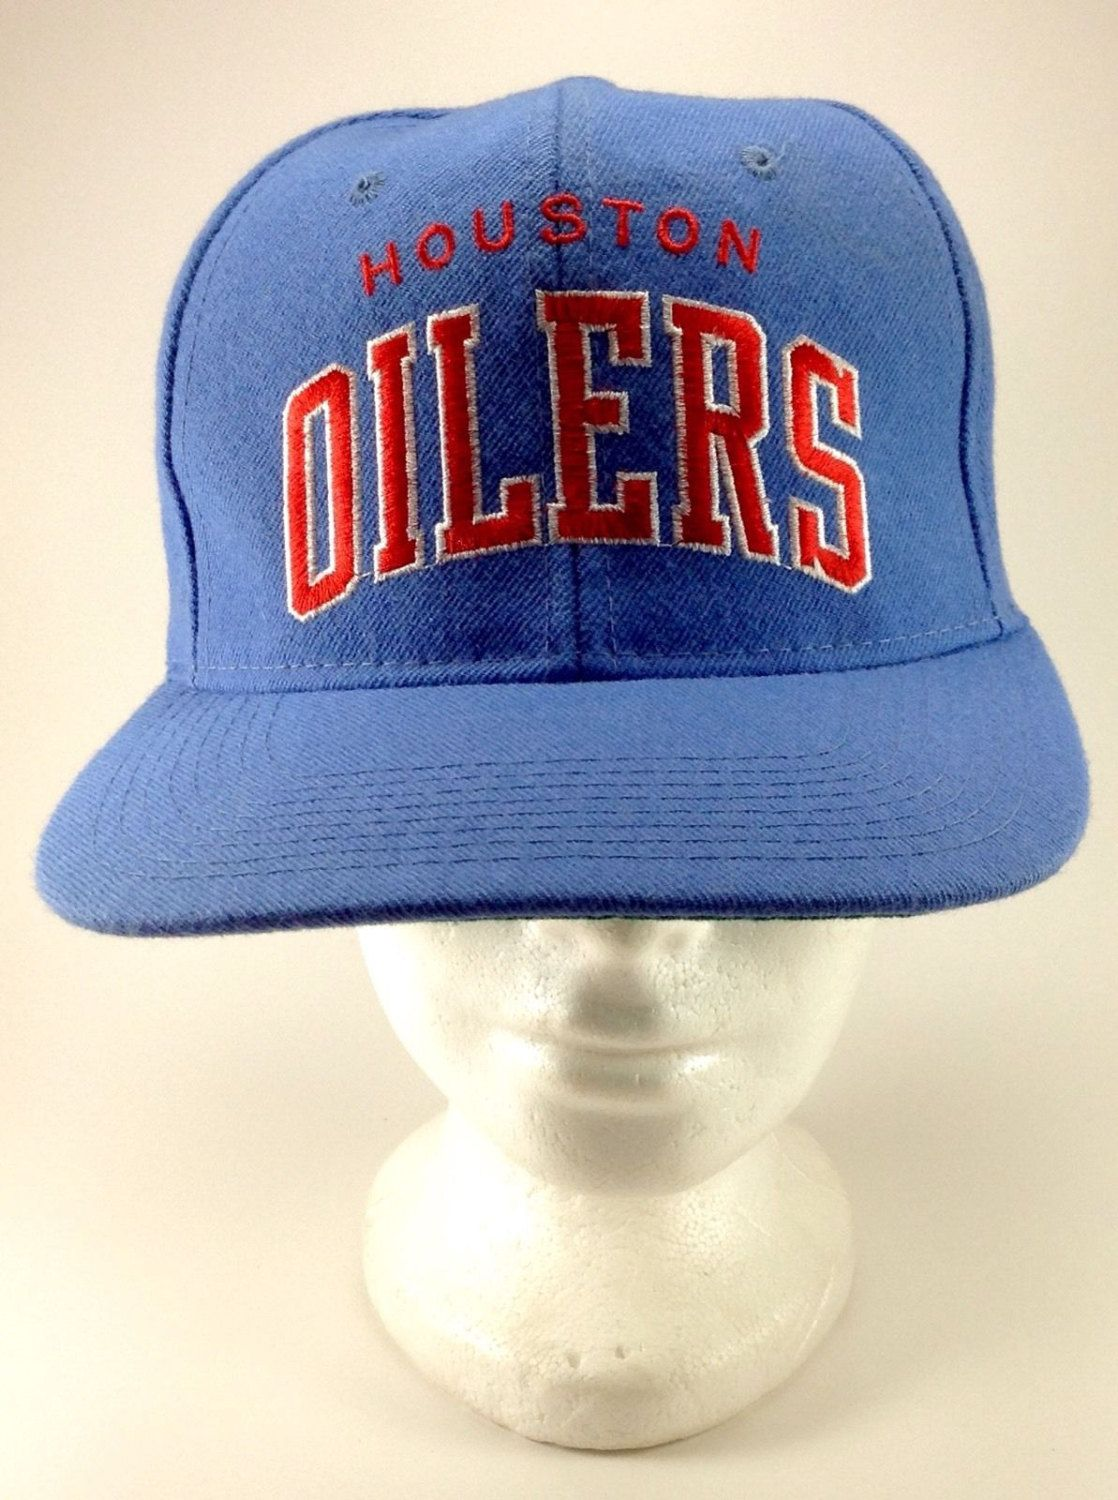 731276ac83e Vintage Snapback Hat Cap Houston Oilers NFL Starter Plain Logo Arched Baby  Blue by Jhollas on Etsy